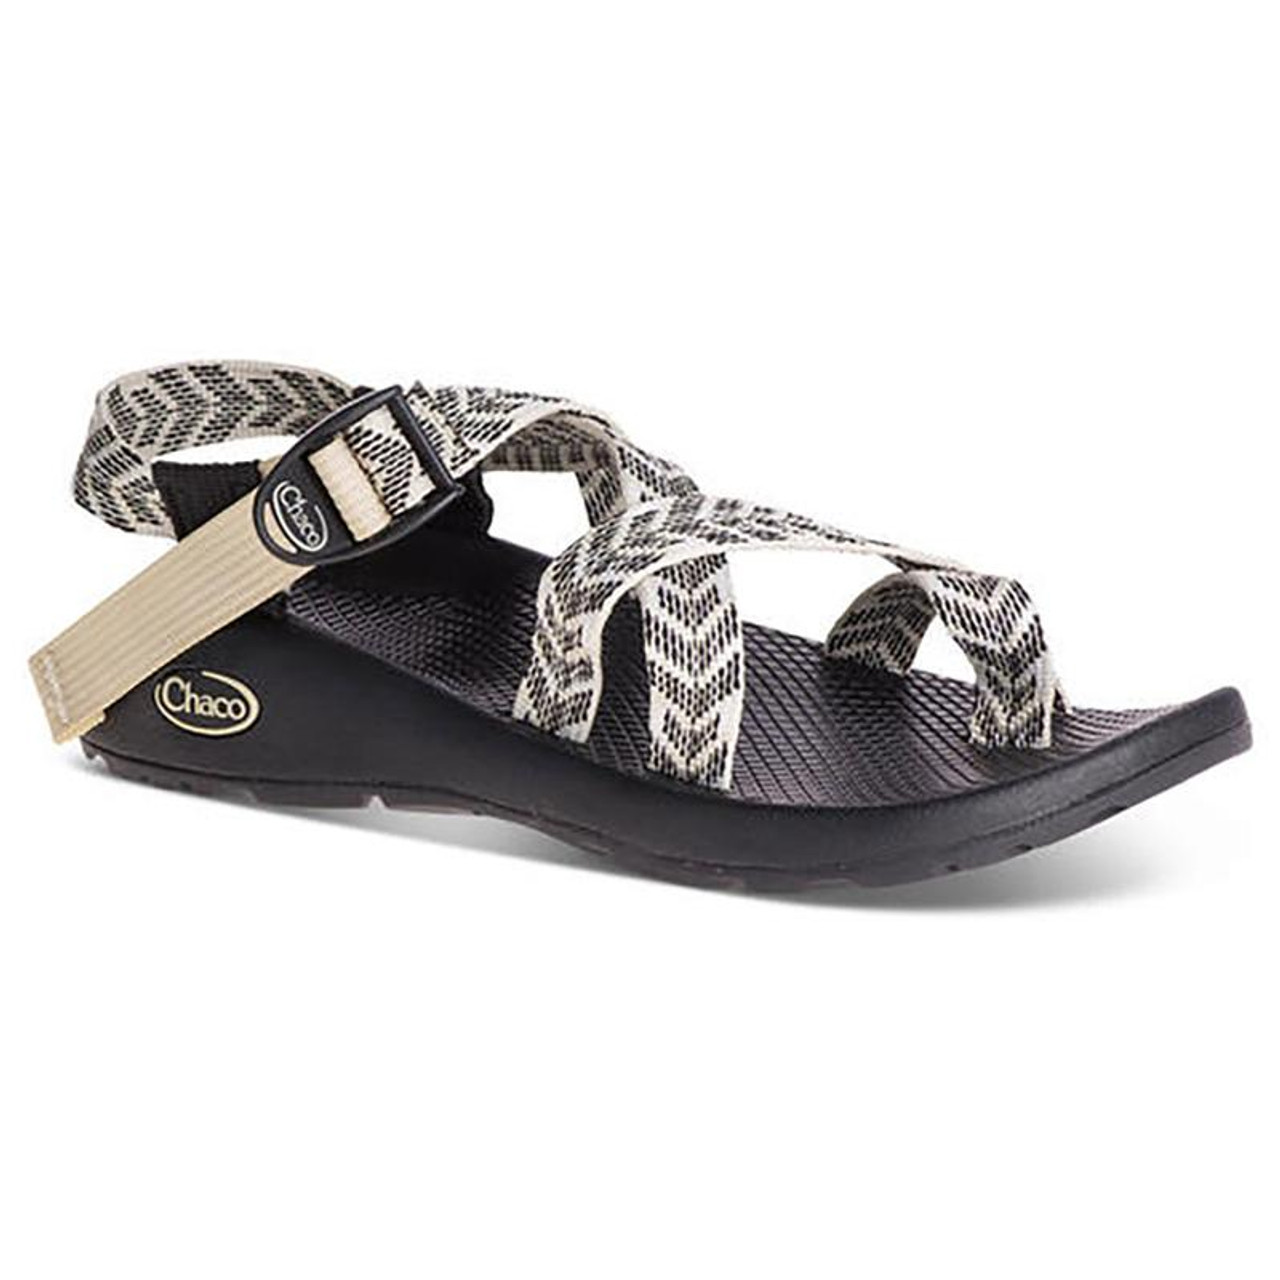 bca3ad64cf23 Chaco Women s Sandal - Z 2 Classic - Trine Black and White - Surf ...